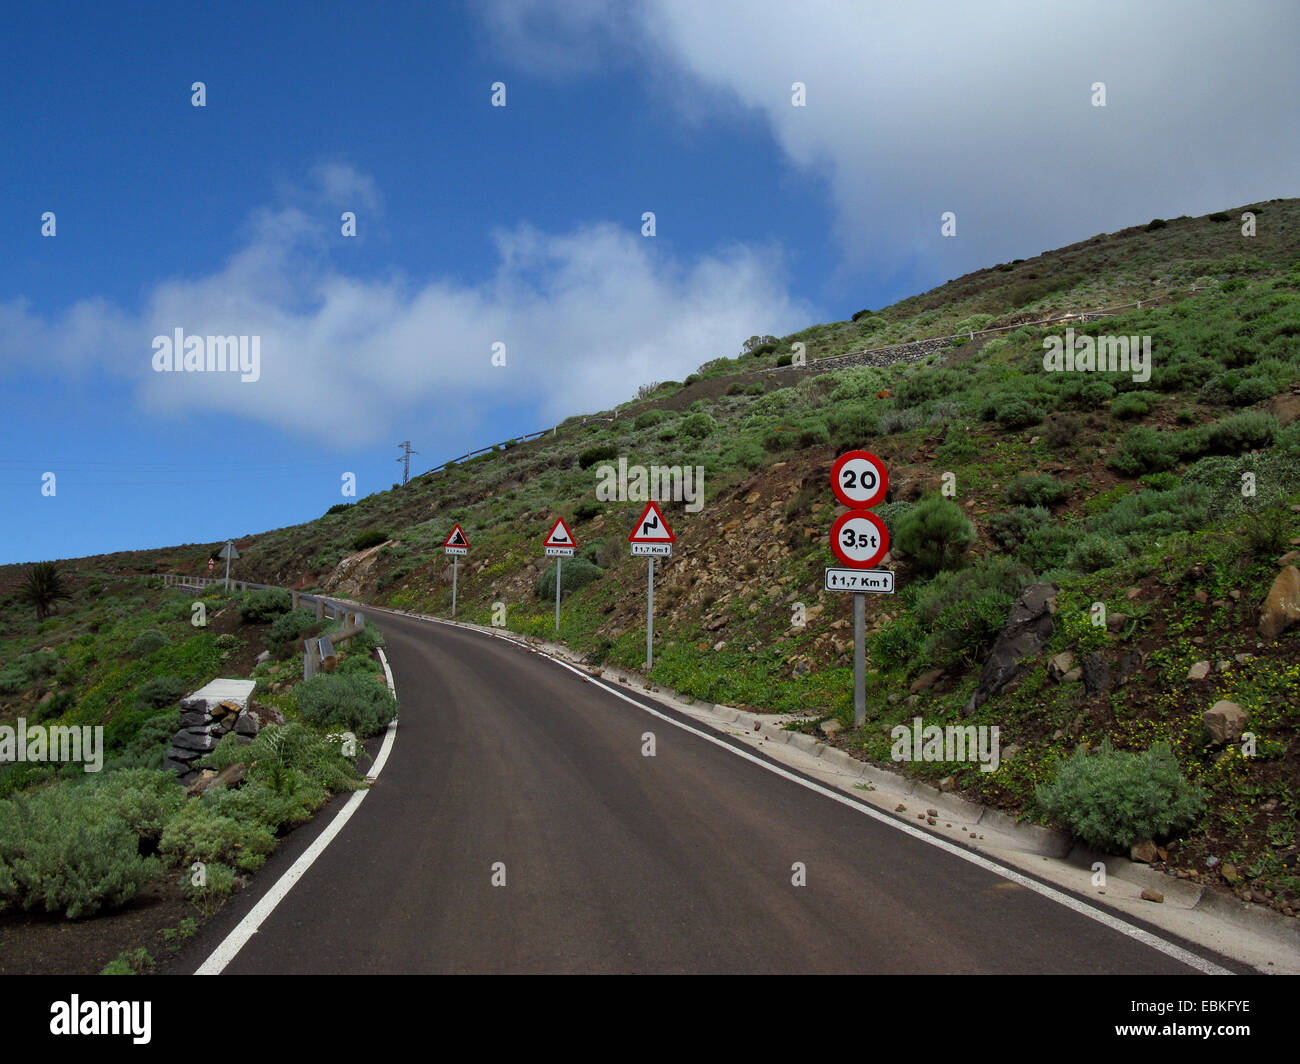 jungles of signs at a new street in the valley of Tazo, Canary Islands, Gomera Stock Photo